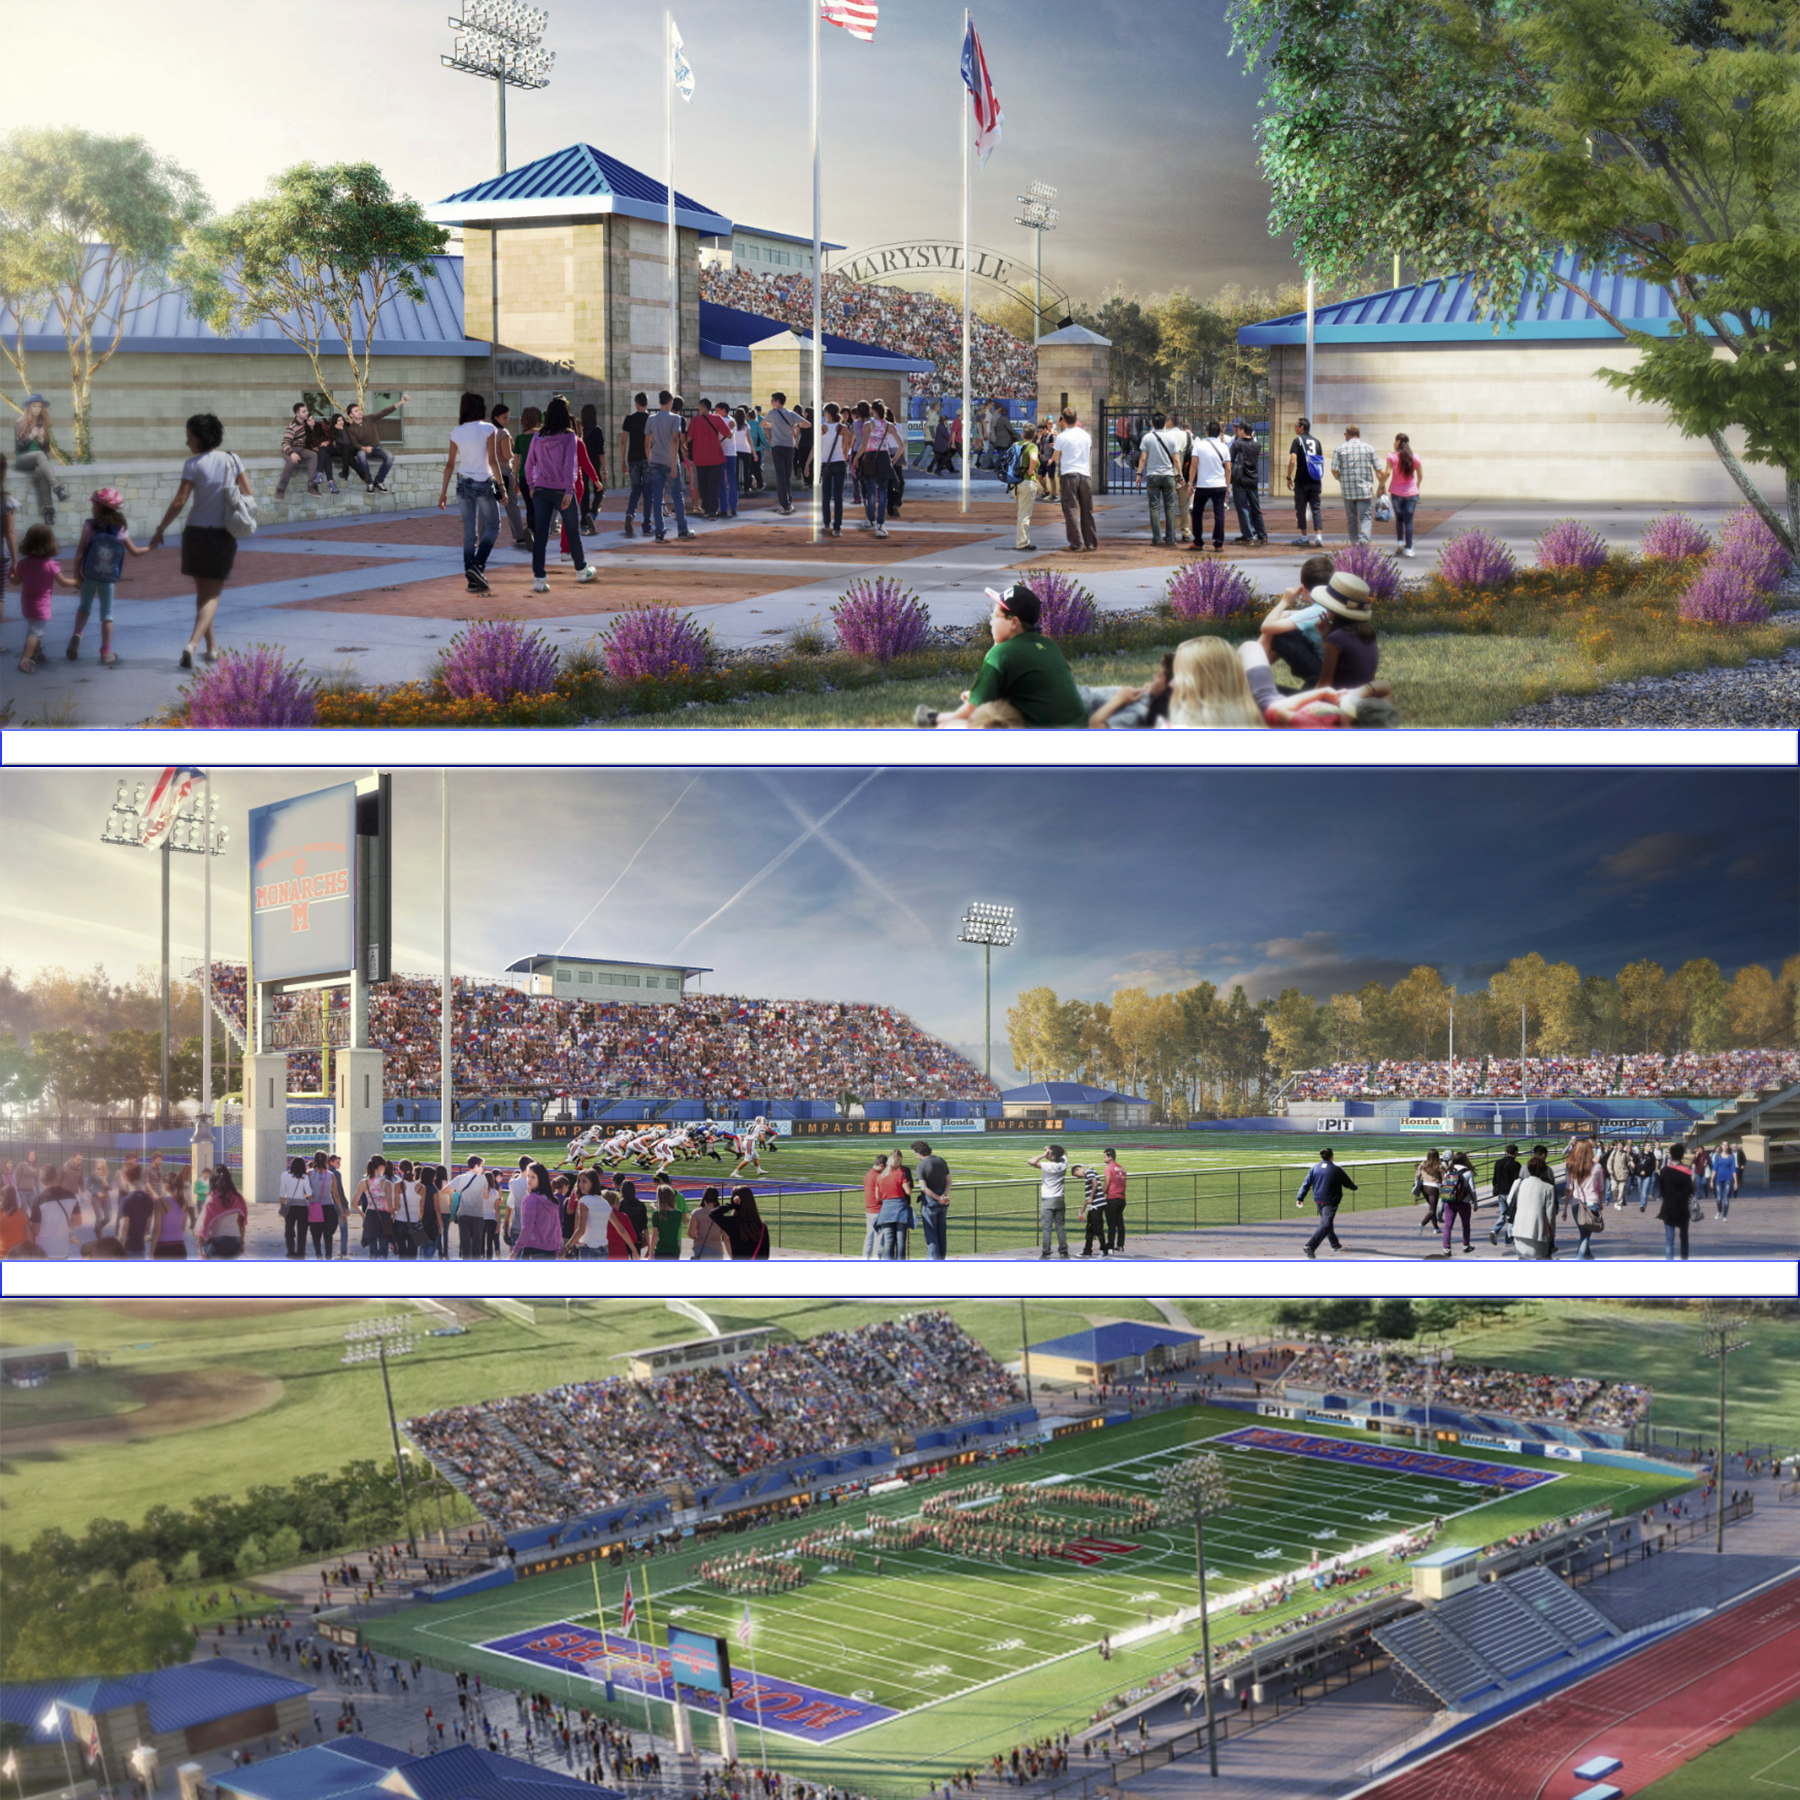 Numerous Naming Rights available for MHS Concession Stands, MHS End Zones, Benches, Locker Room, Ticket Booths, Bleacher Sections. Please Contact Todd Johnson at 937-578-6100